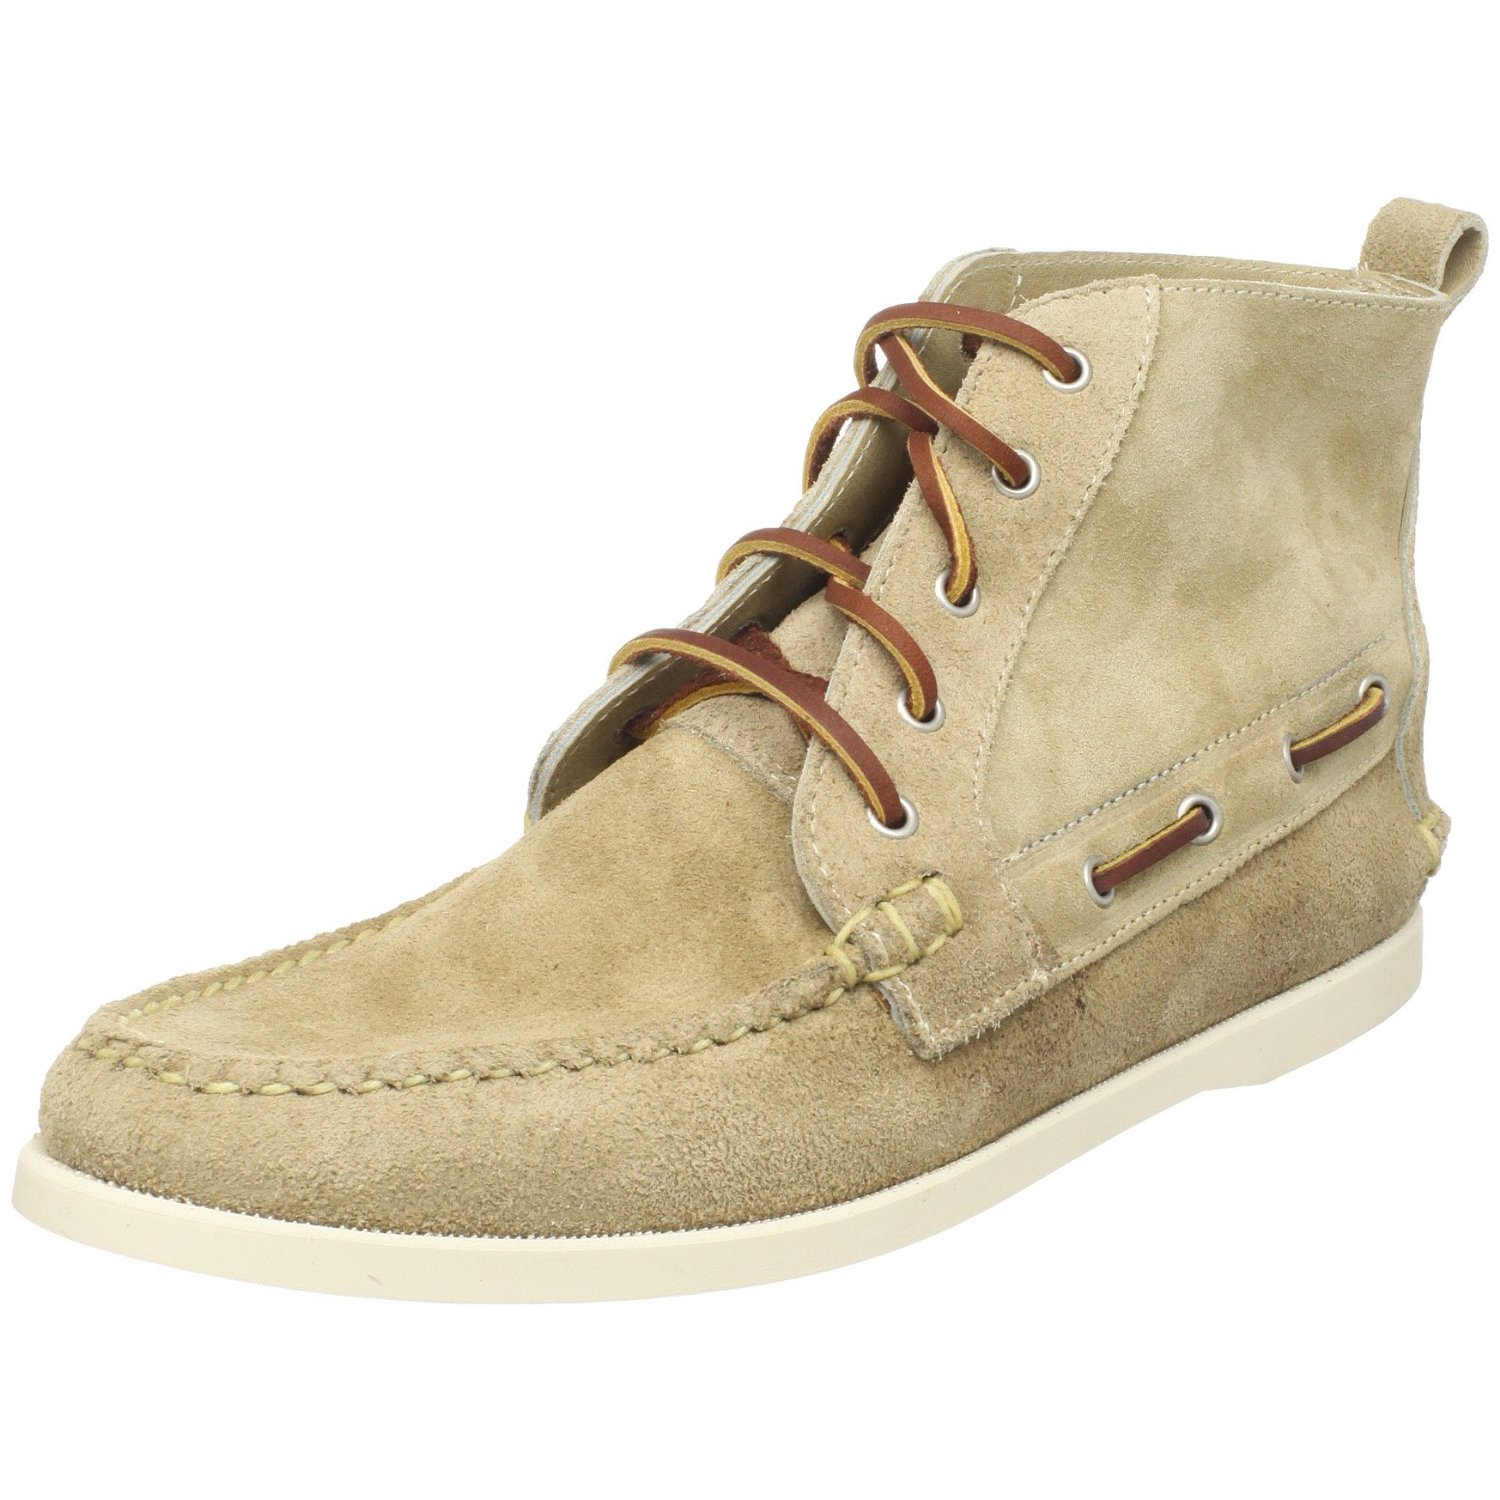 Thoughts on high-top boat shoes?